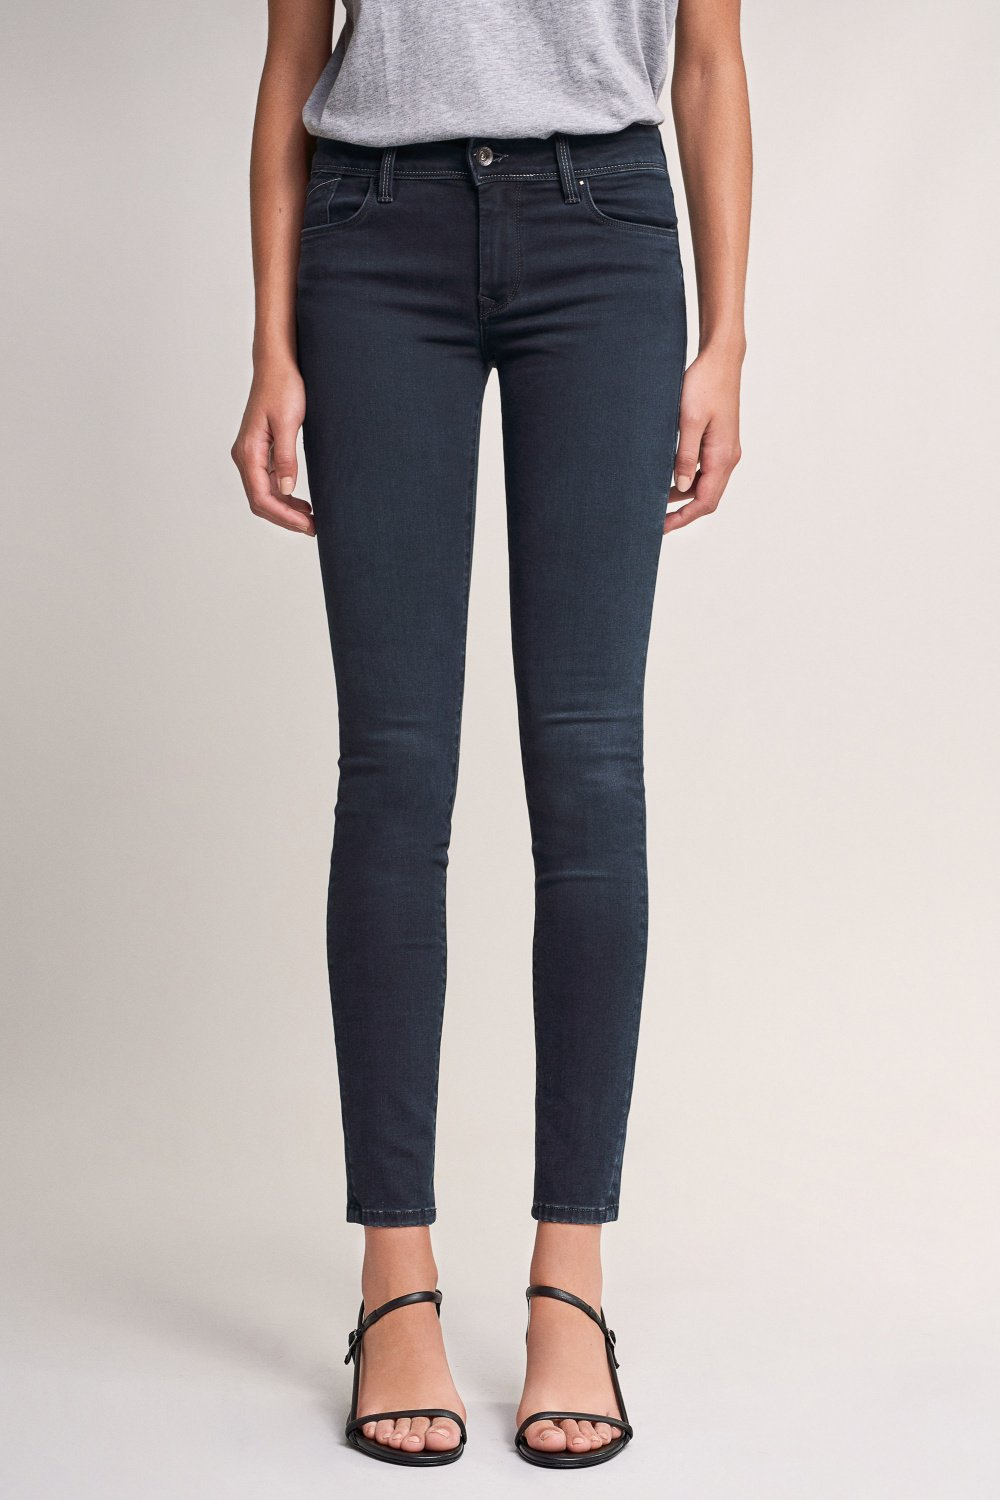 Colette skinny jeans with detail - Salsa